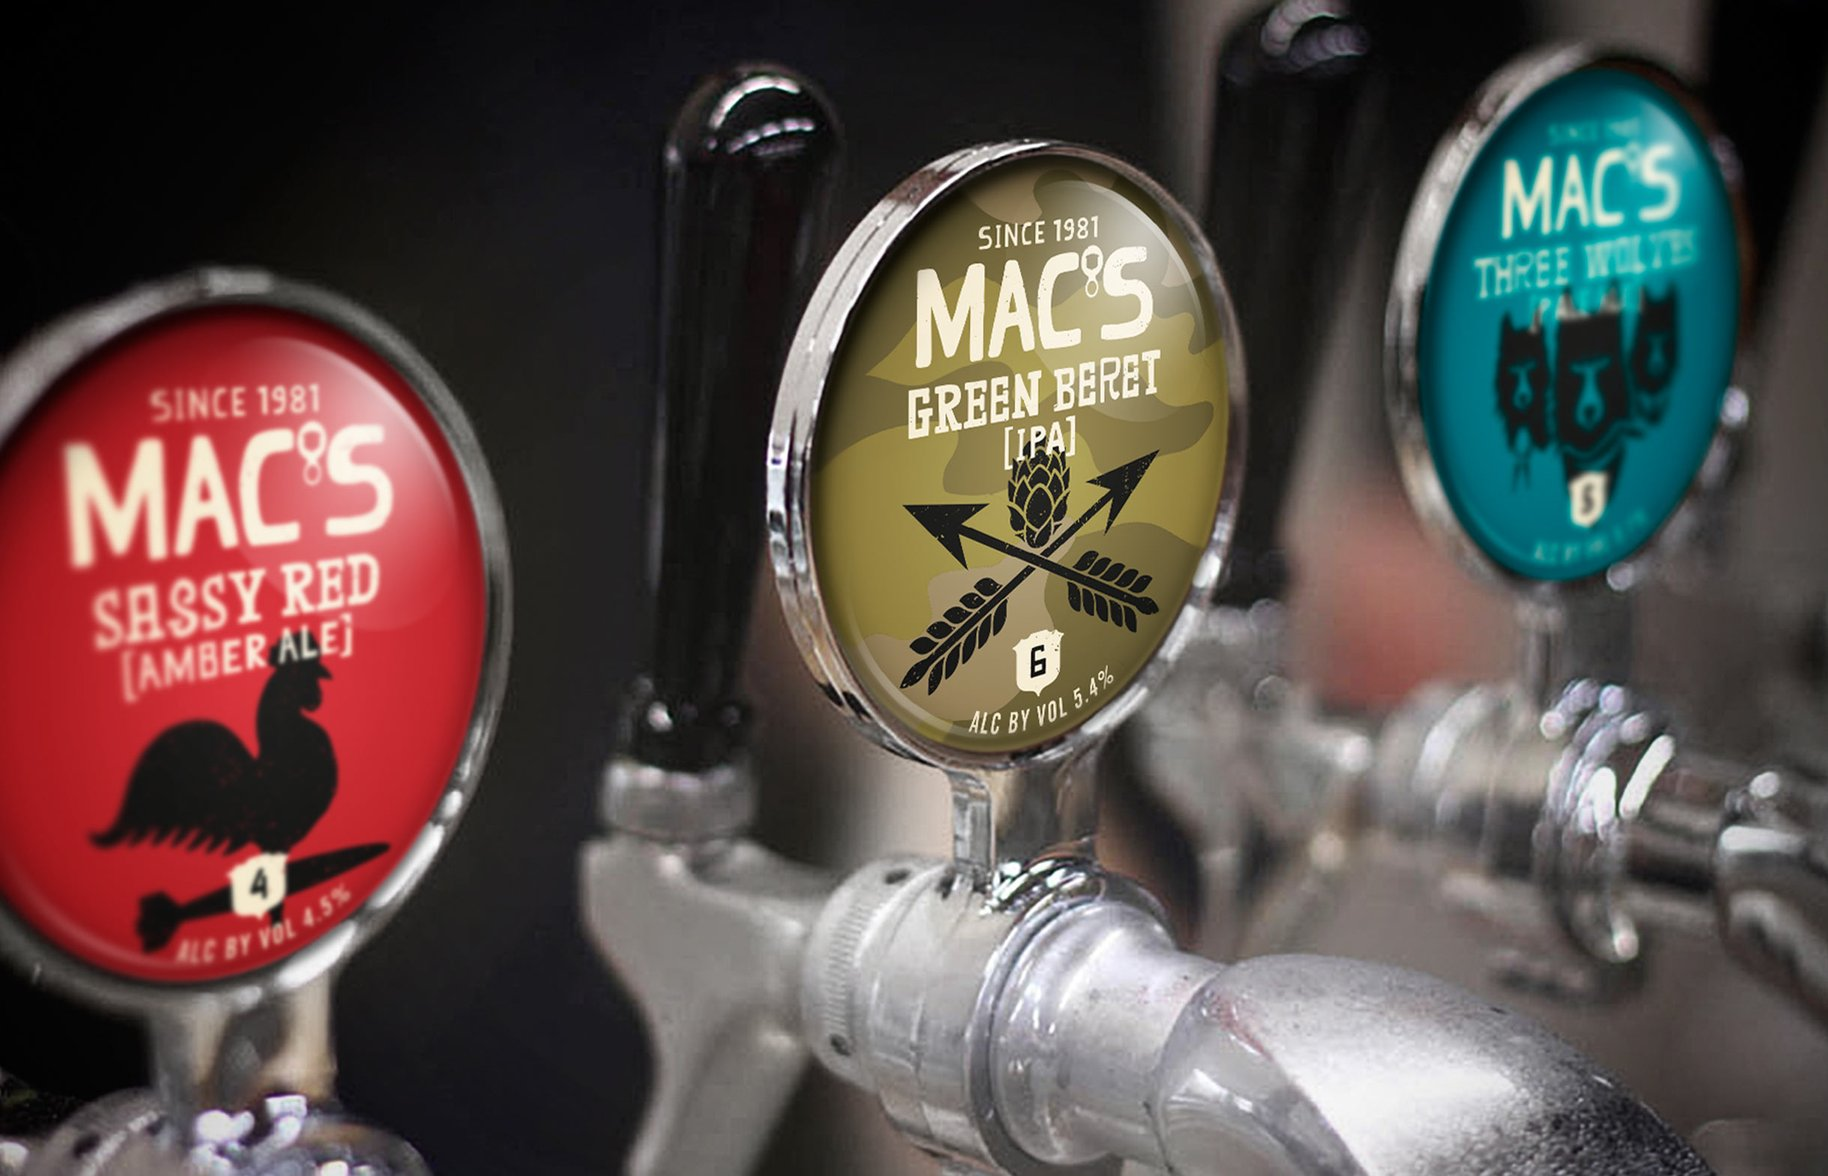 Macs Beer taps photography